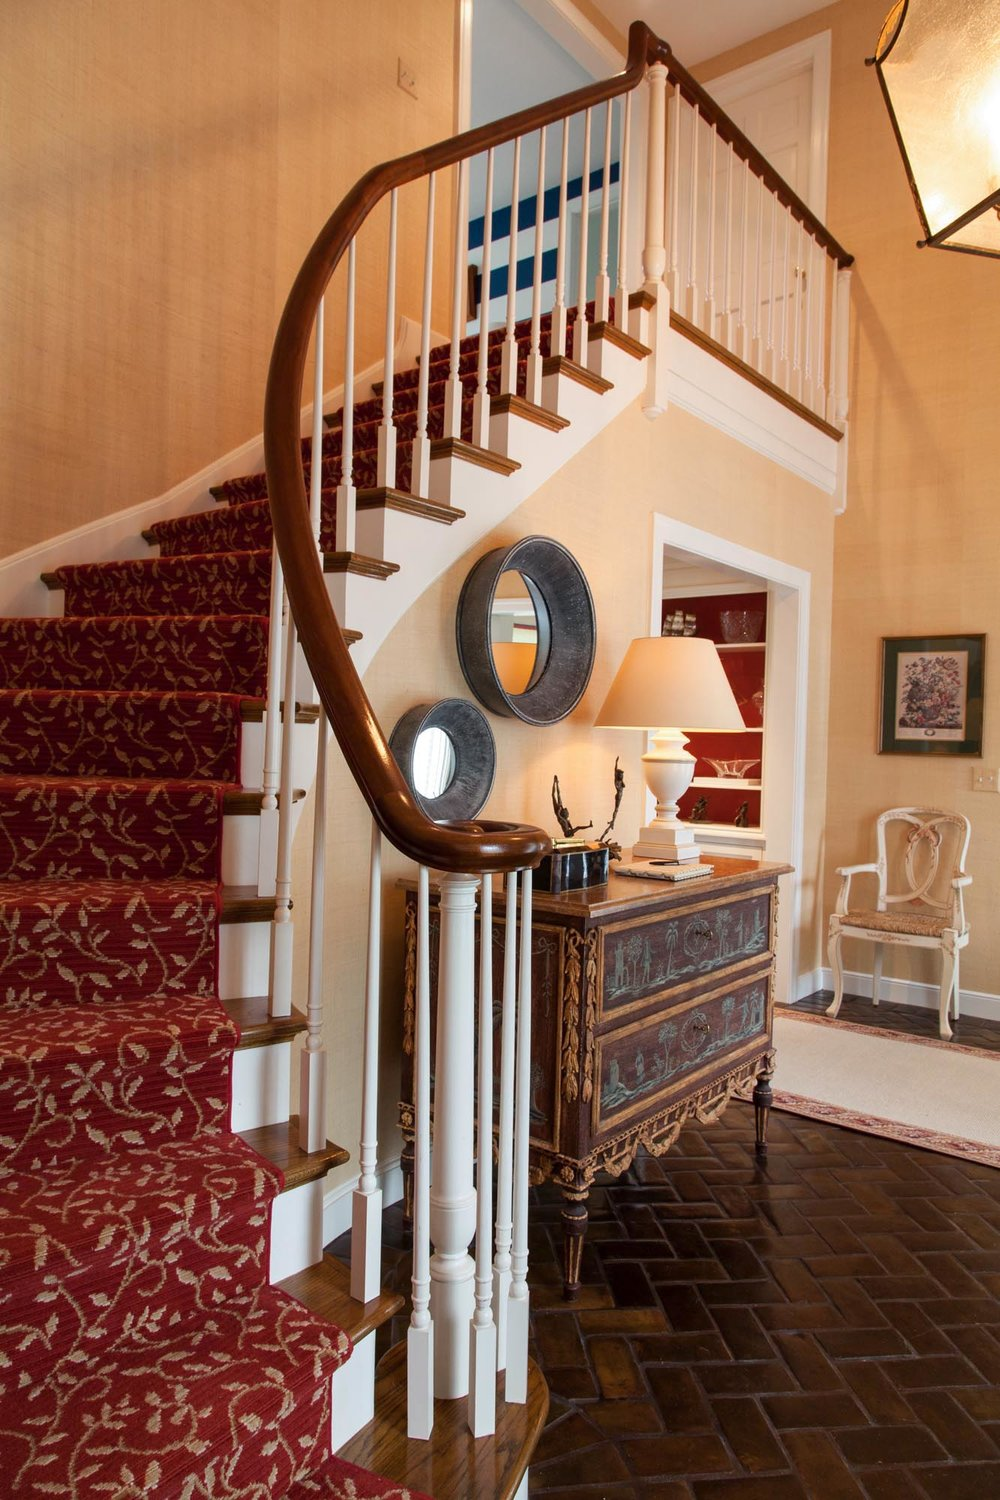 Wooden Staircase with carpet and wooden handrails